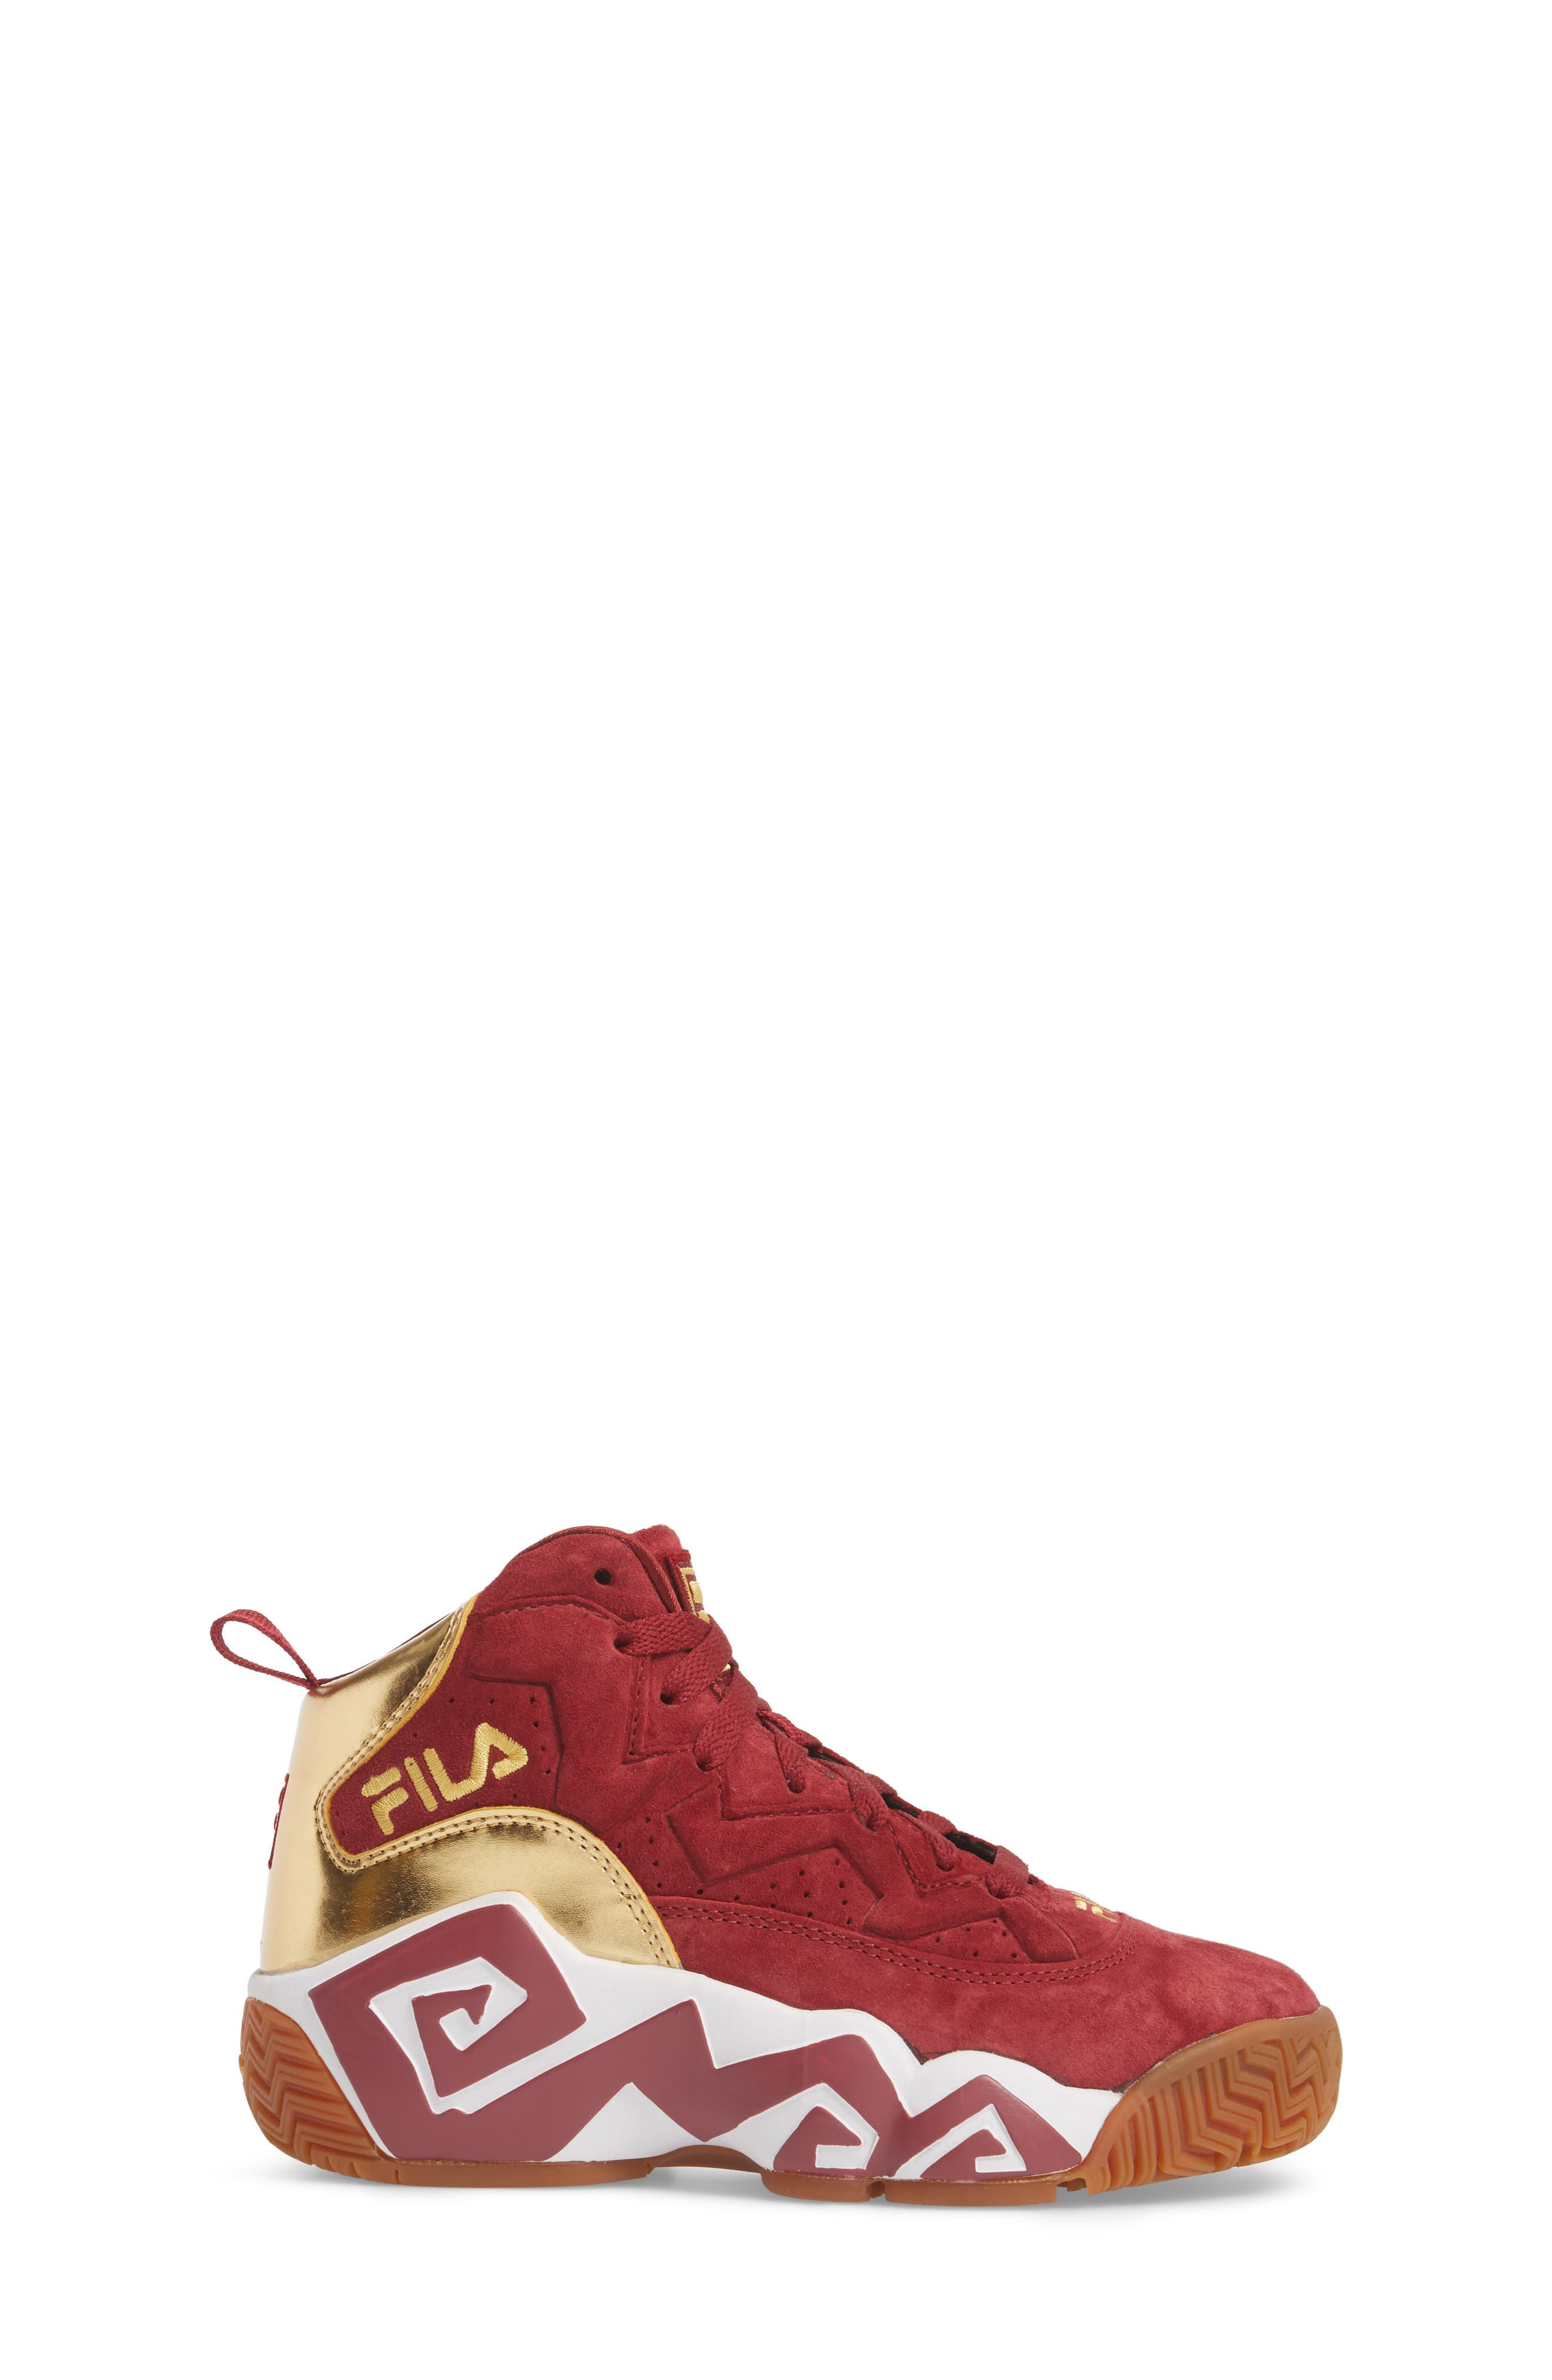 FILA, Heritage Sneaker, Alternate thumbnail 3, color, BIKING RED/ GOLD/ WHITE